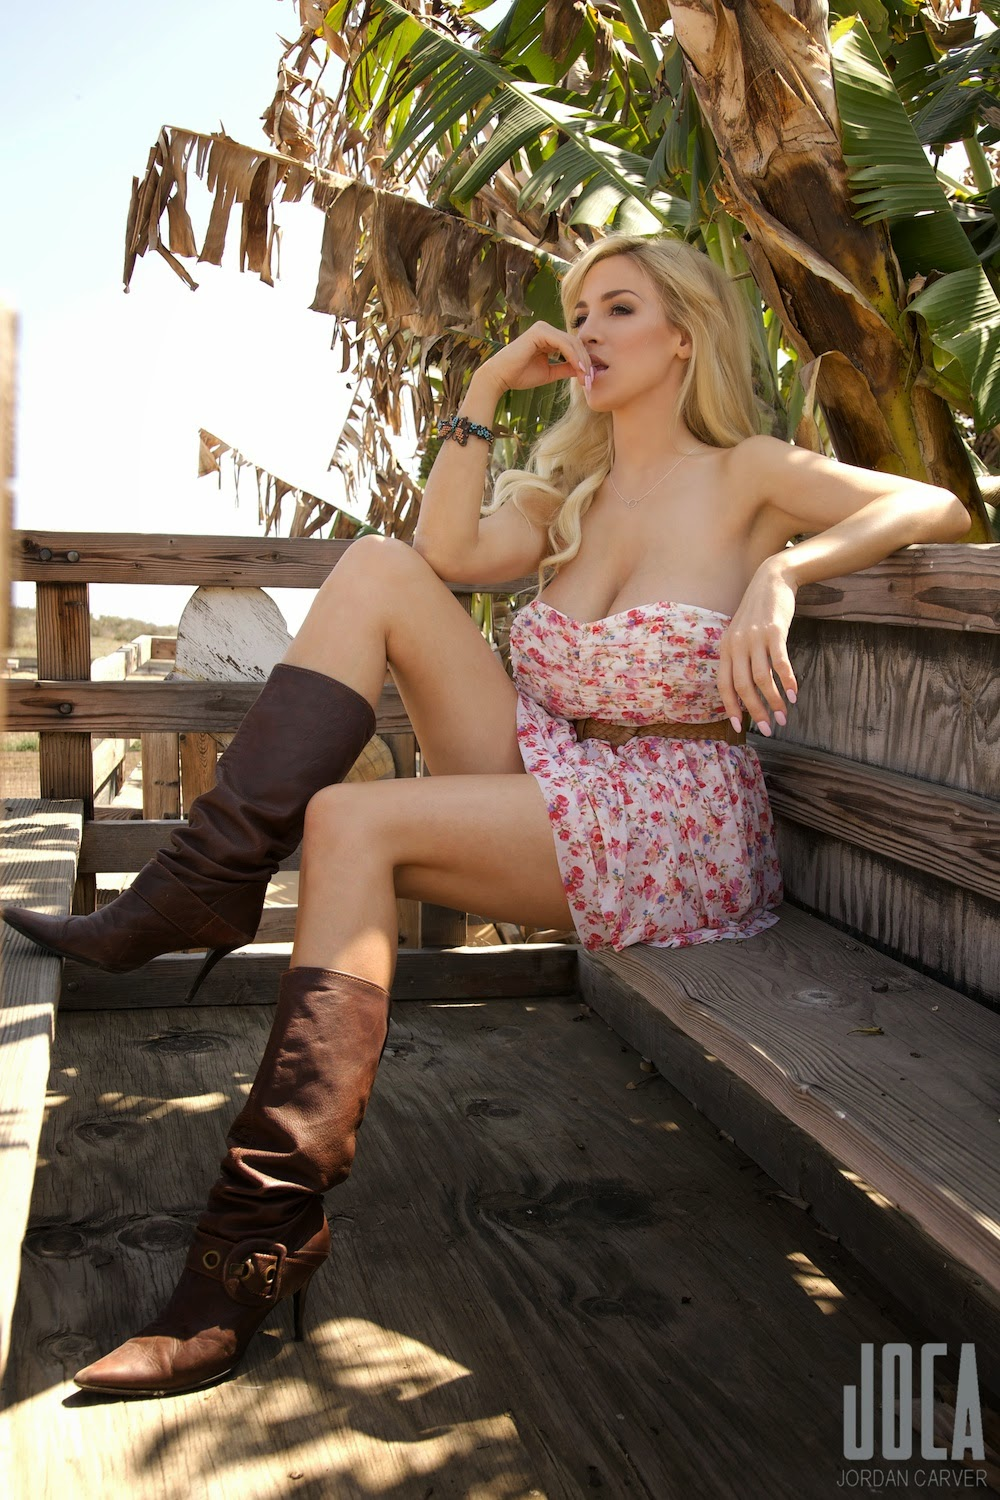 Jordan Carver Hot Boobs Show In Farm Field The Farmers Daughter - Big Boobs Jordan Carver-6376